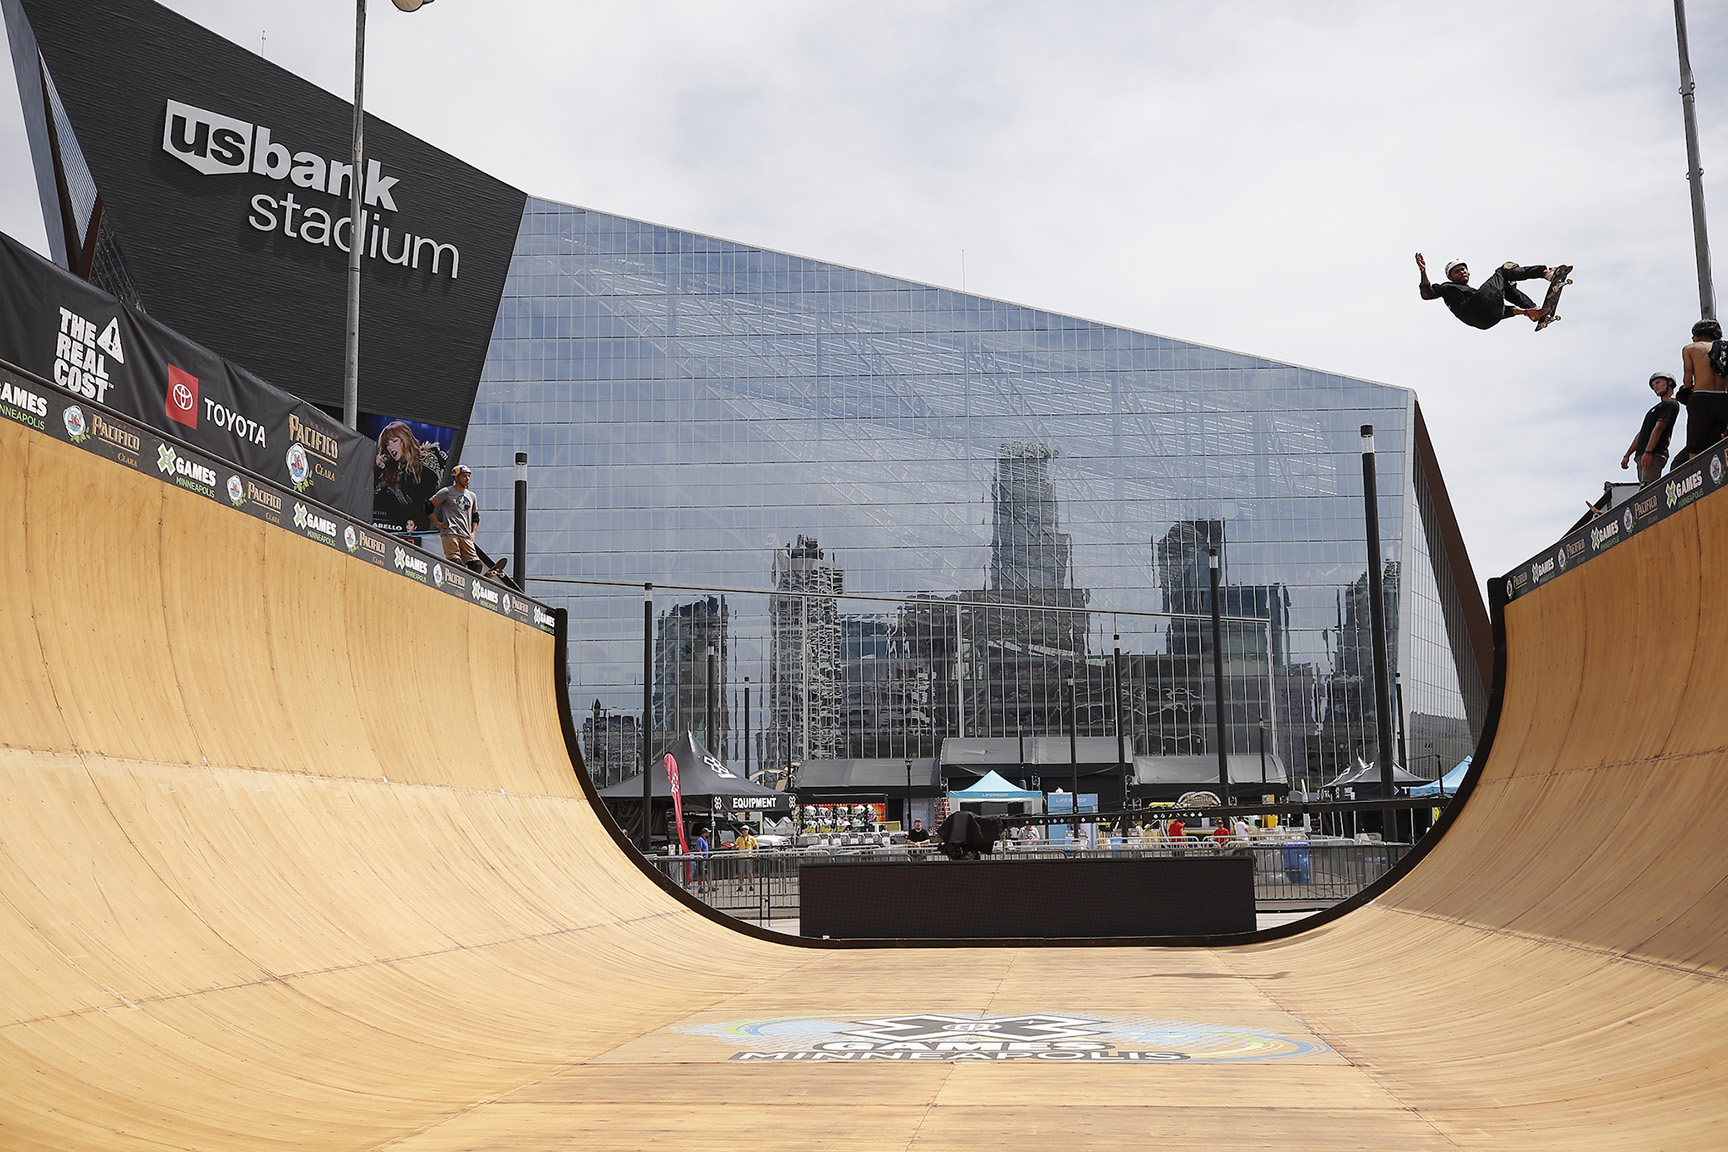 Located front and center of U.S. Bank Stadium is the Skateboard and BMX Vert ramp.